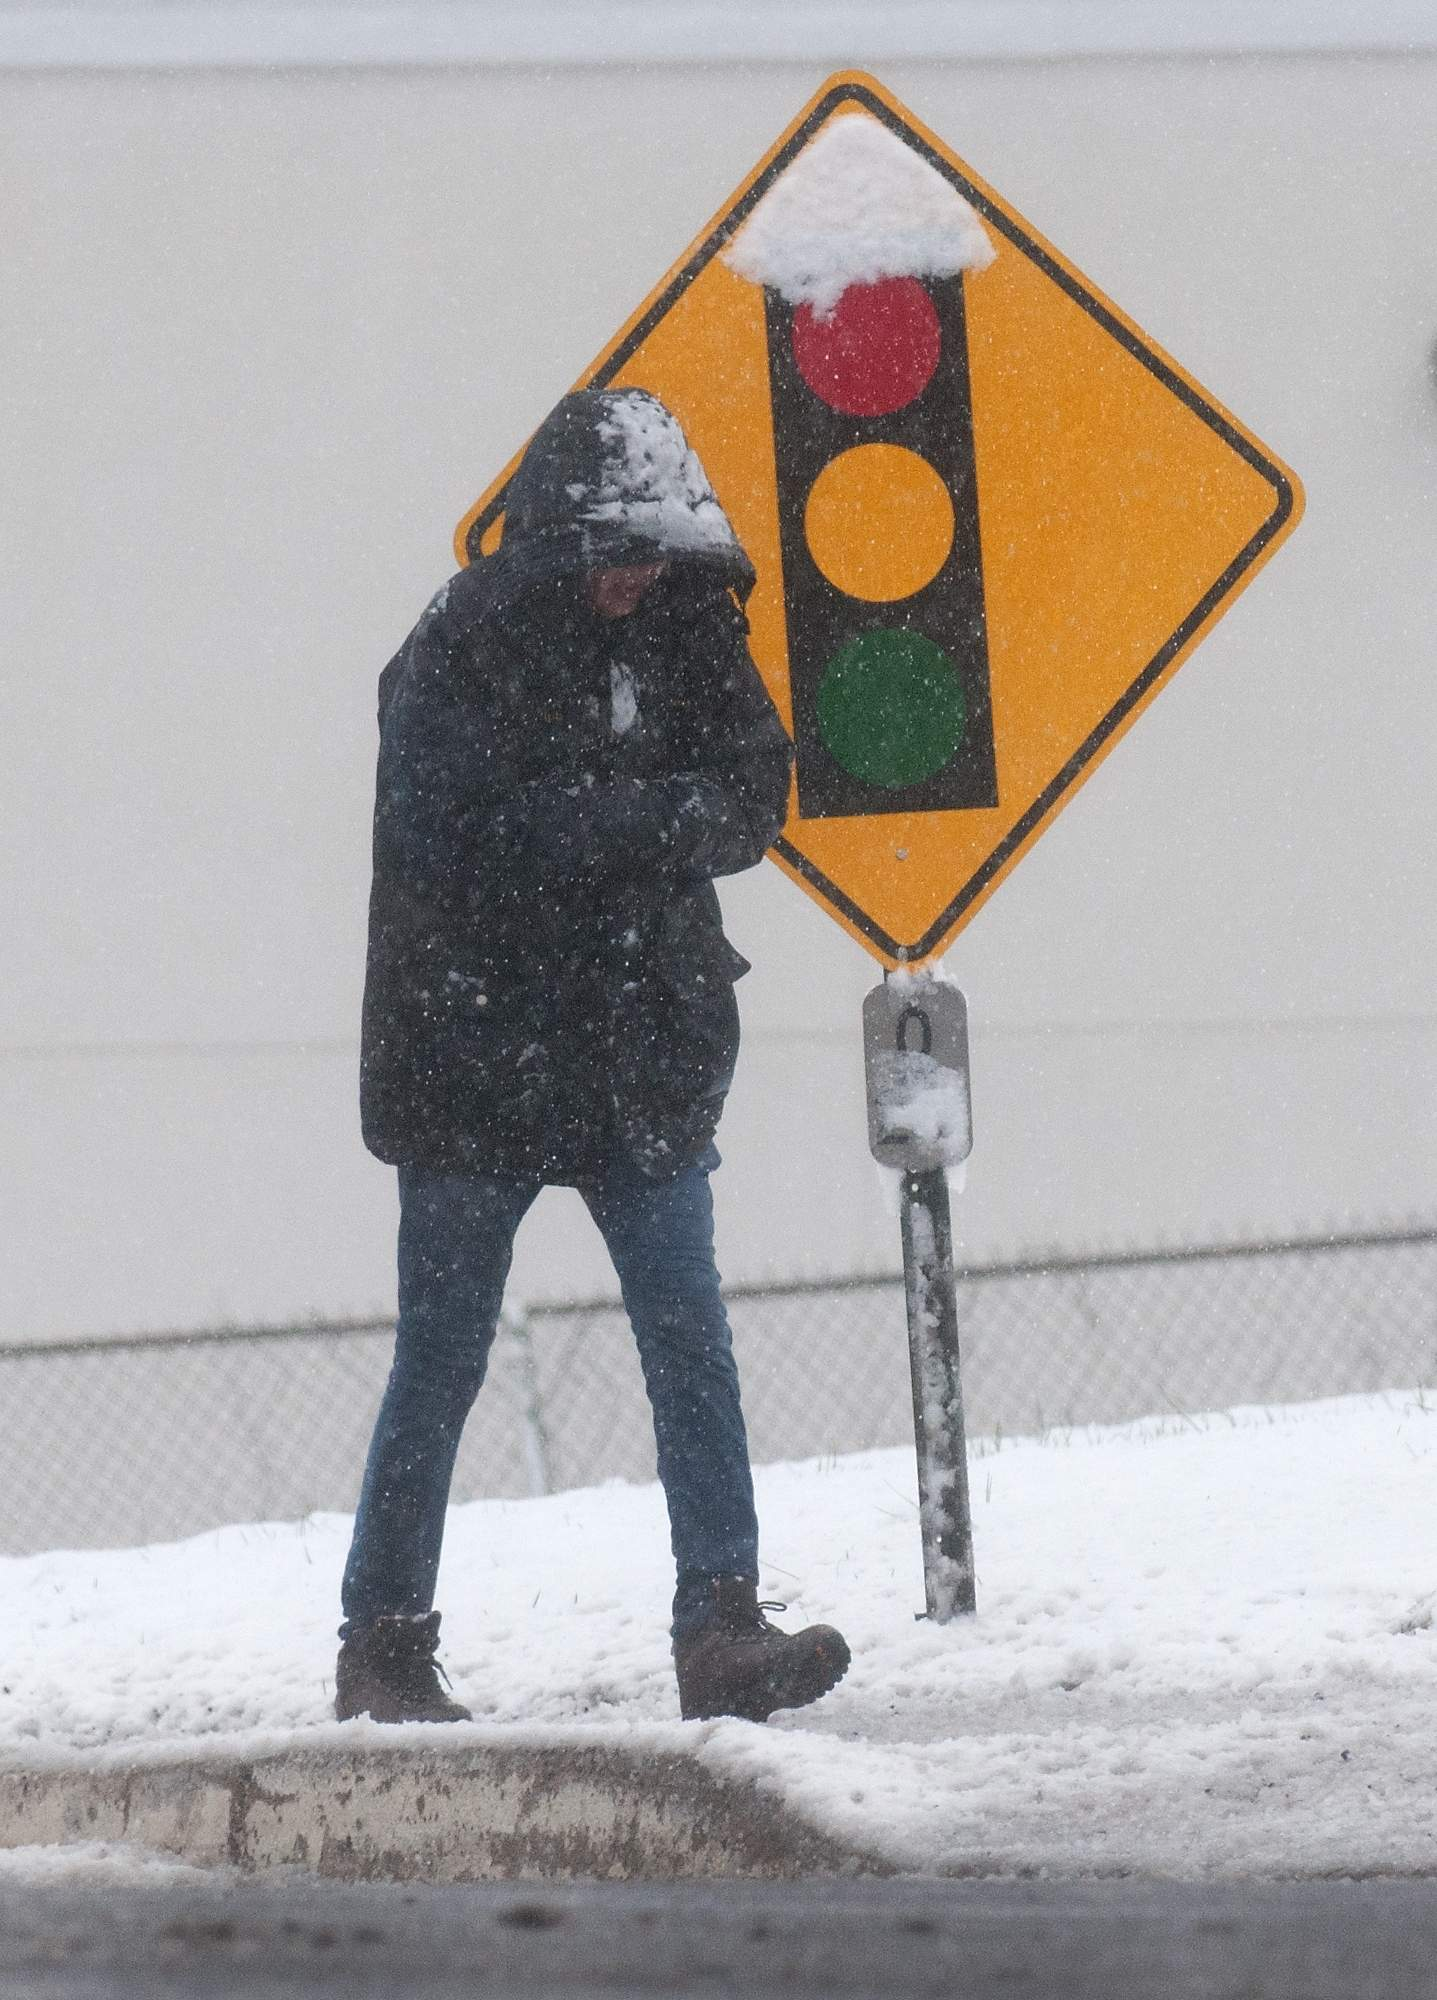 A pedestrian makes their way along Bustleton Pike during a second nor'easter Wednesday, March 7, 2018 in Lower Southampton. [BILL FRASER / STAFF PHOTOJOURNALIST]